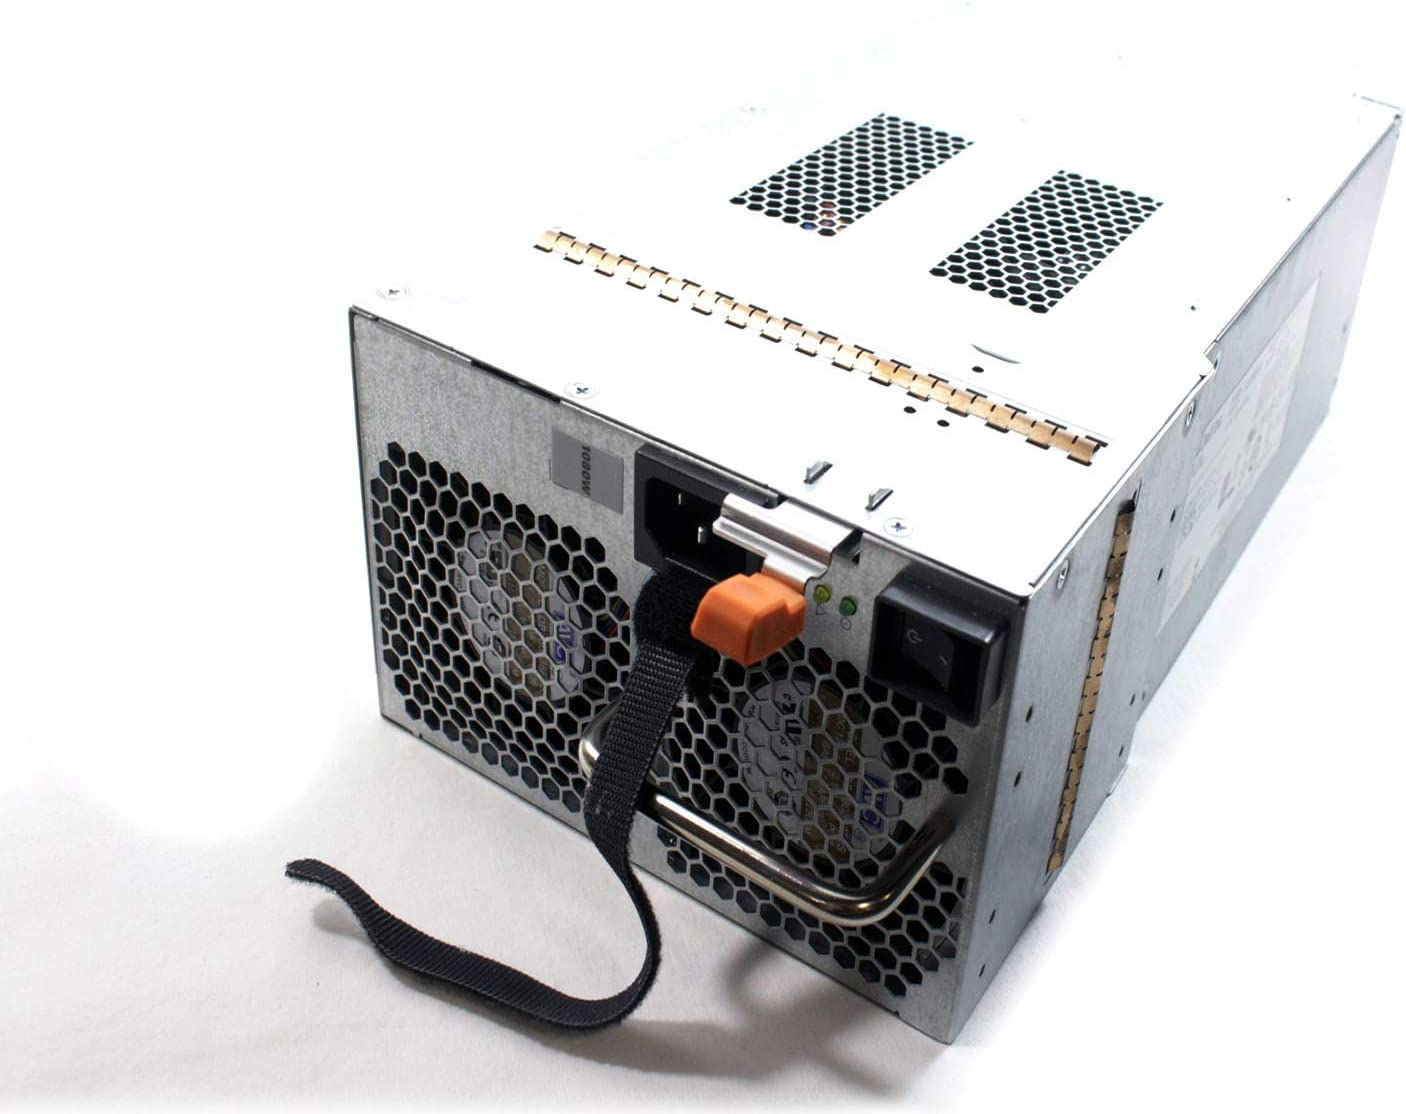 """New VHFKD Dell EQL 3.5"""" Chassis PS6100/E PS6110/E Storage Array 1080W Redundant Power Supply PSU D1080N-S0 Dual-Fan Switching Backup Power Source P/S Delta DPS-1080AB M2TJT 10DKX HCP5C MYNPK"""